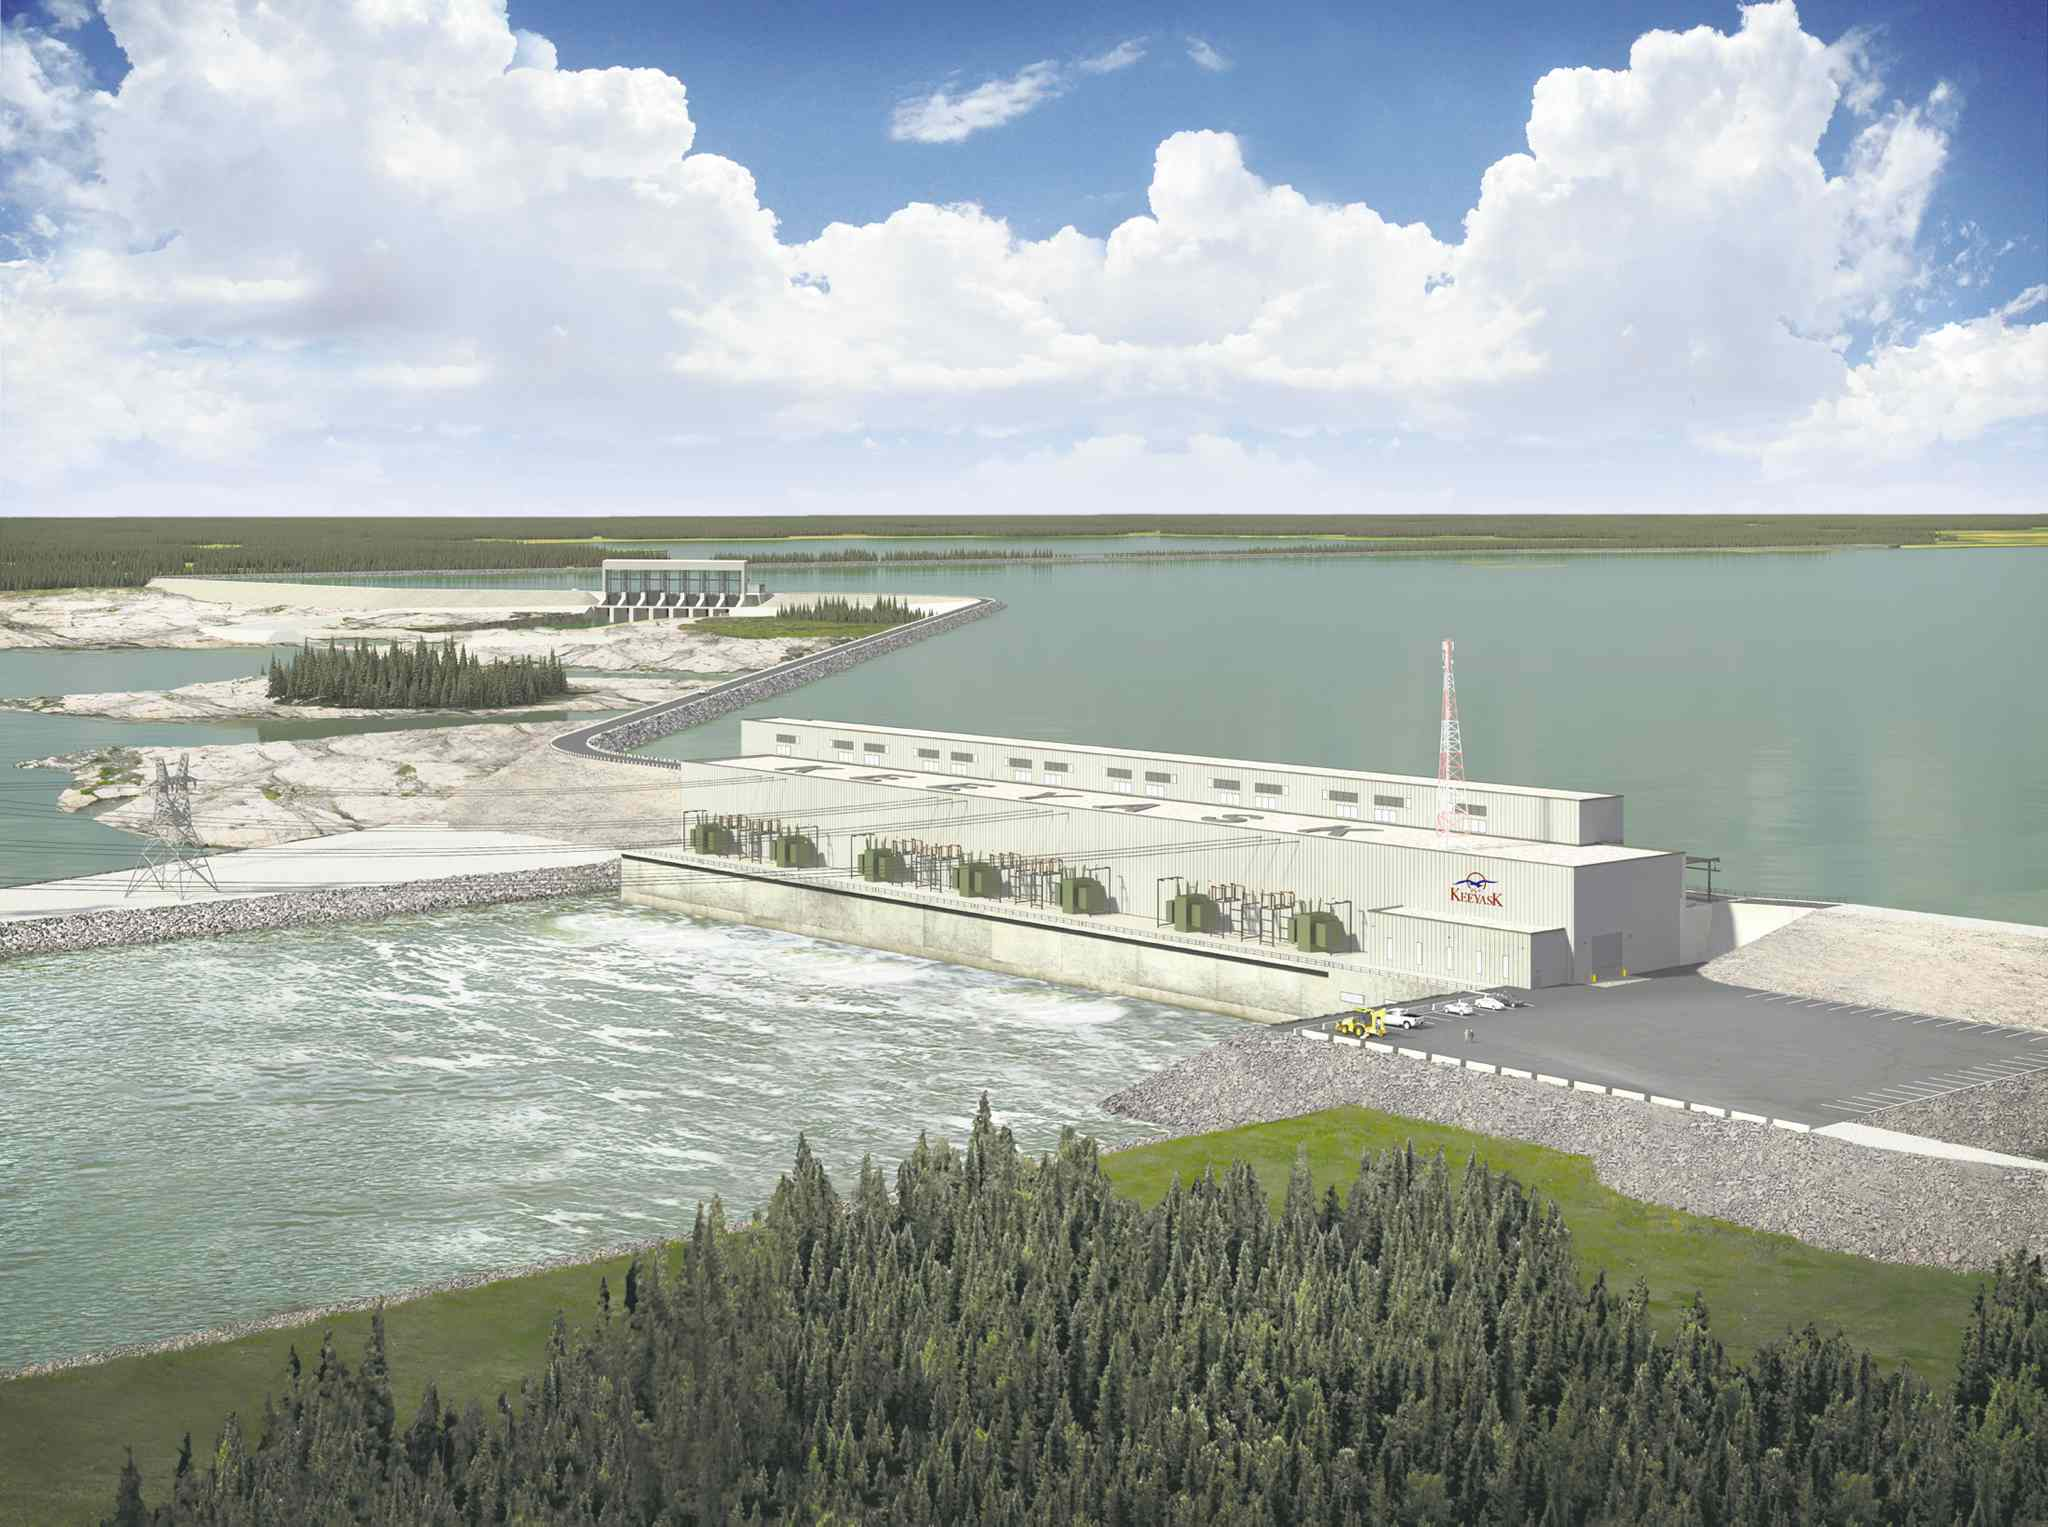 Manitoba Hydro spent $1.4 billion on the Keeyask dam project before getting full regulatory approval.